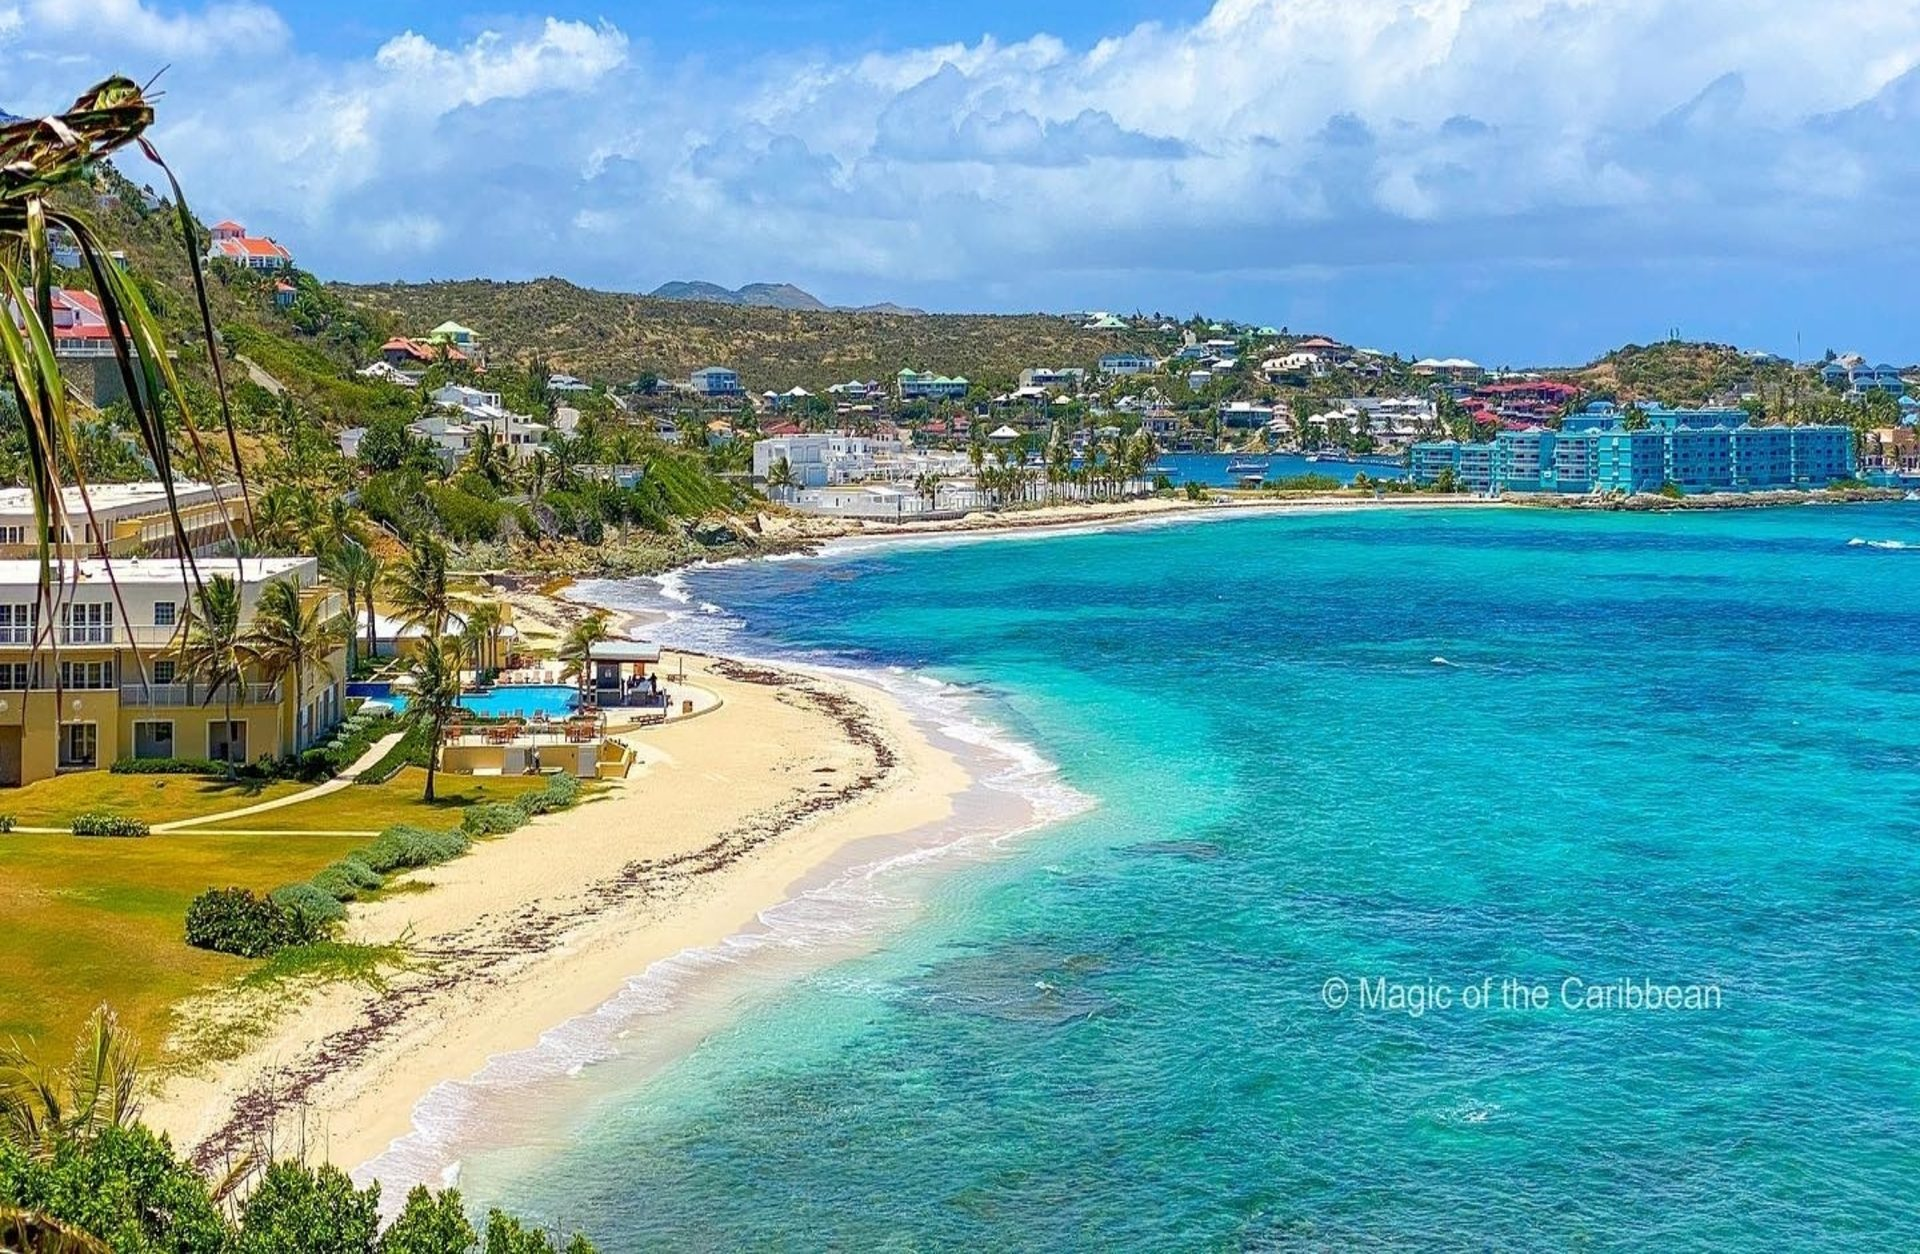 Magic of The Caribbean Picture